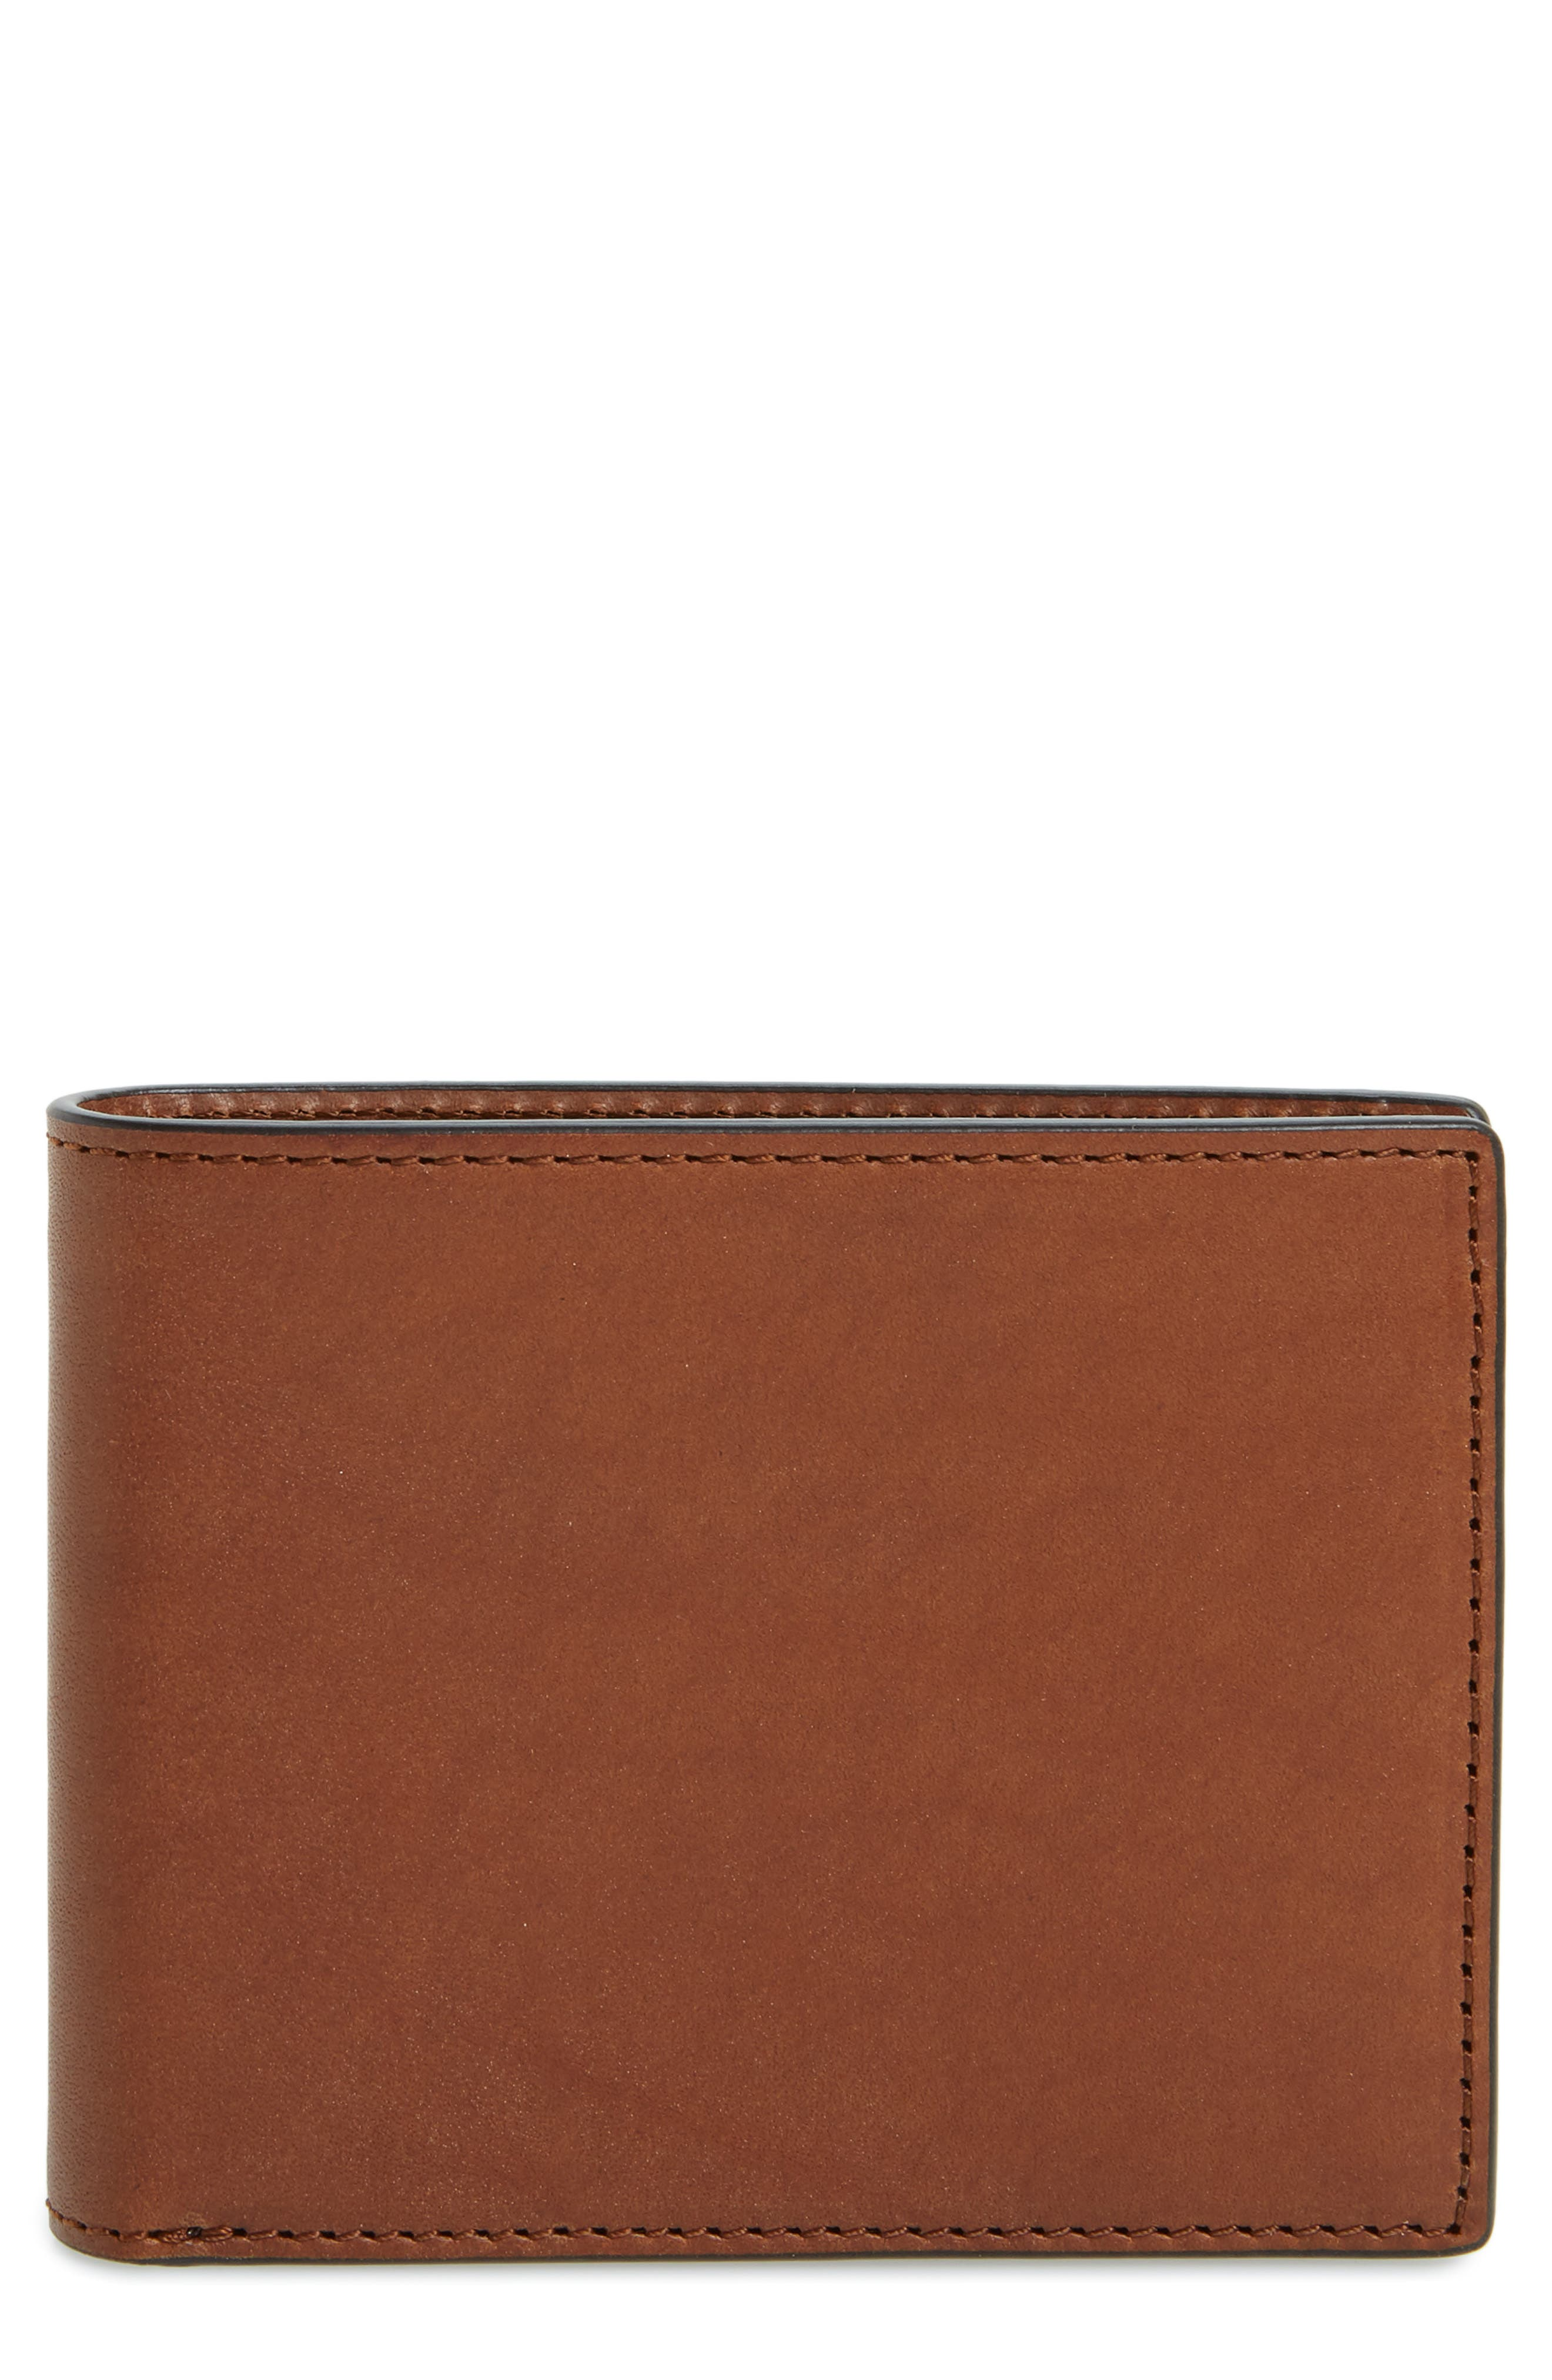 RAG & BONE Hampshire Leather Bifold Wallet, Main, color, BROWN COMBO